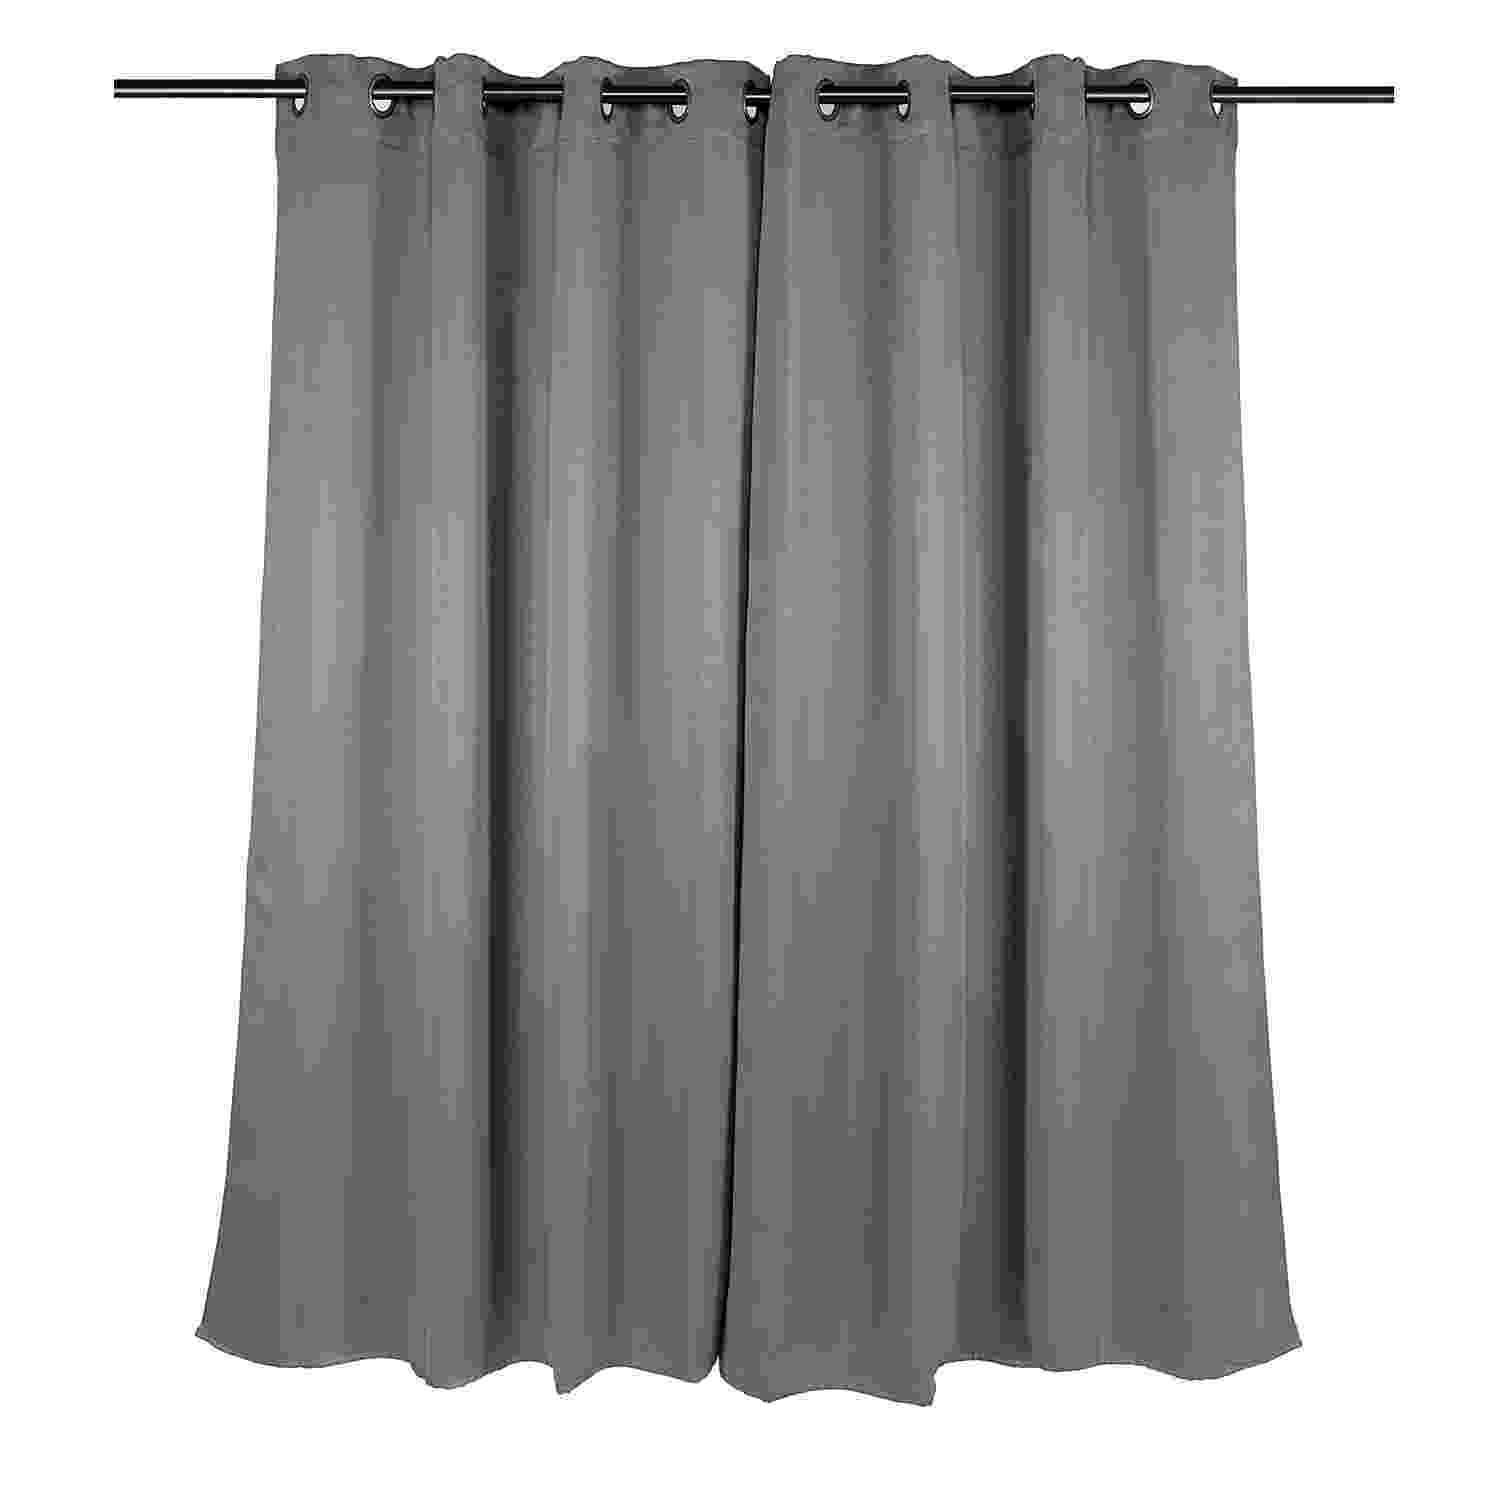 curtain color ideas for living room windows bay window curtains windows in 2019 bay window for room curtain living ideas color windows